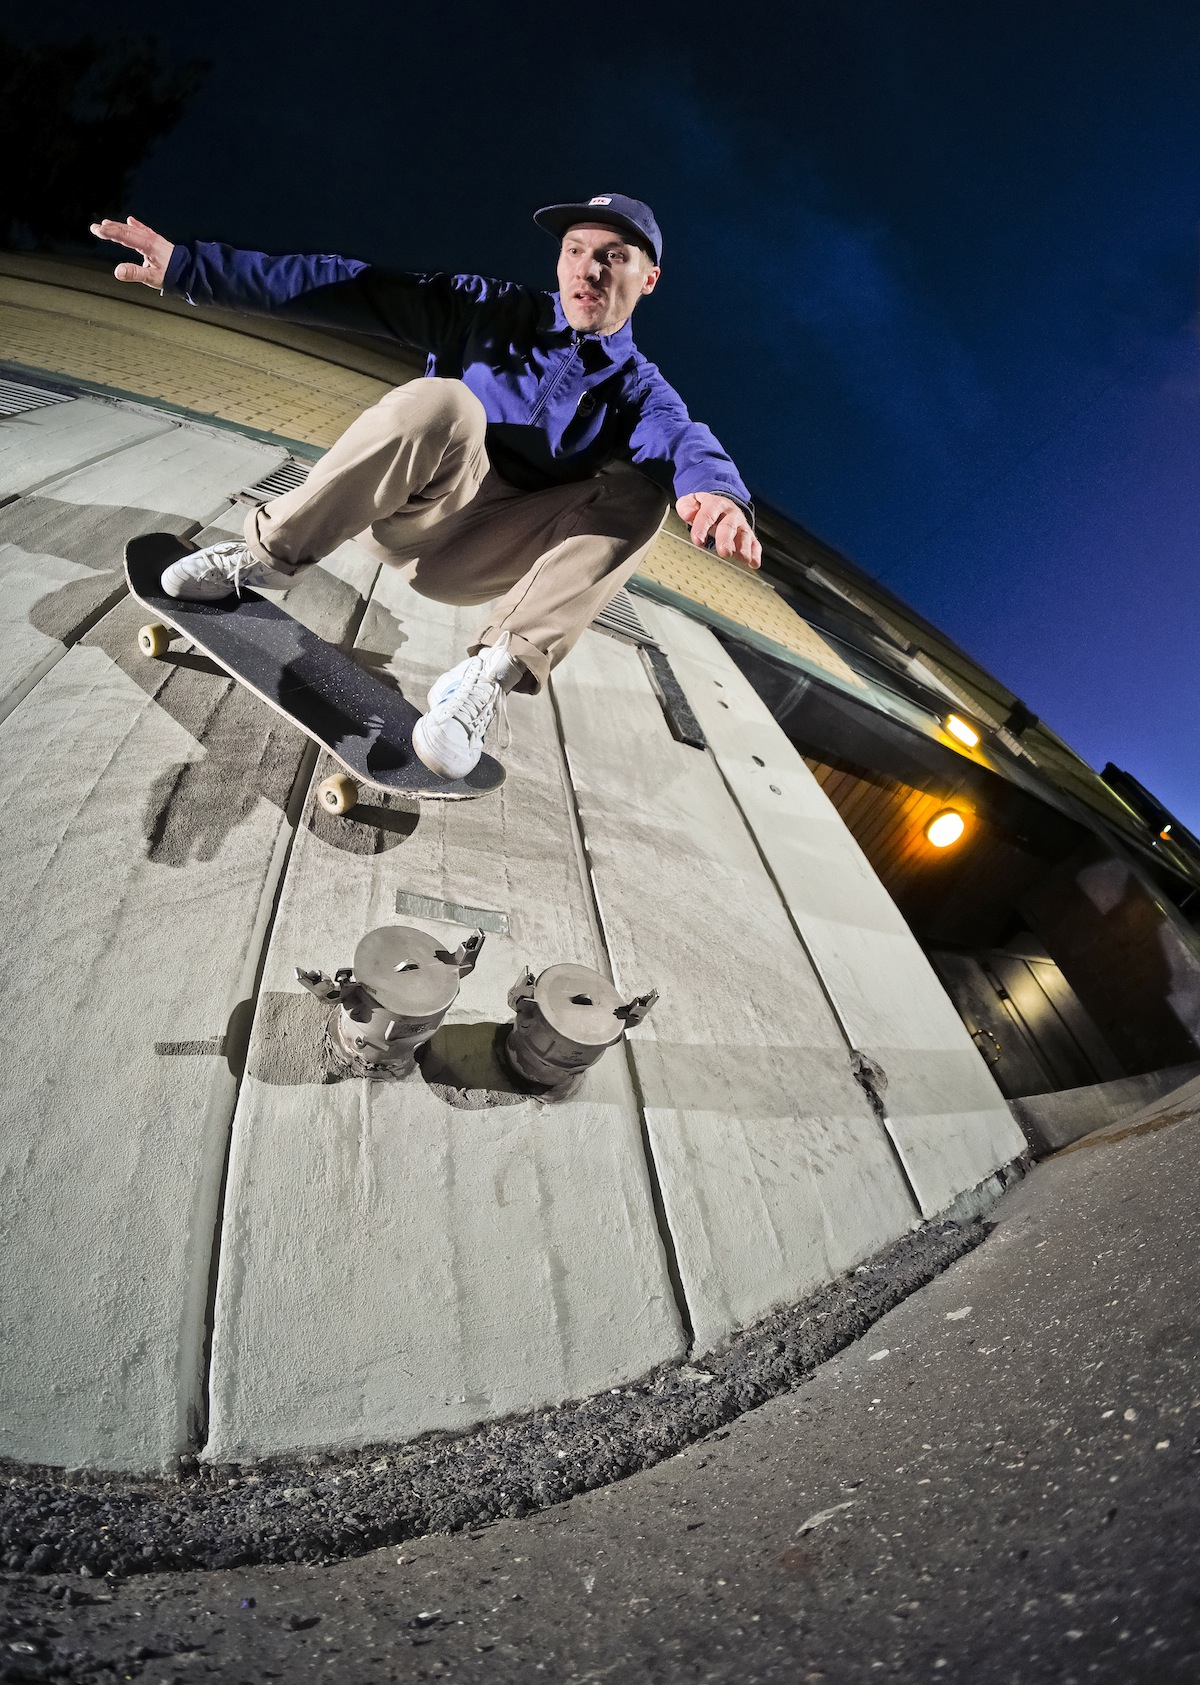 Switch Wallride. Photo: Samu Karvonen